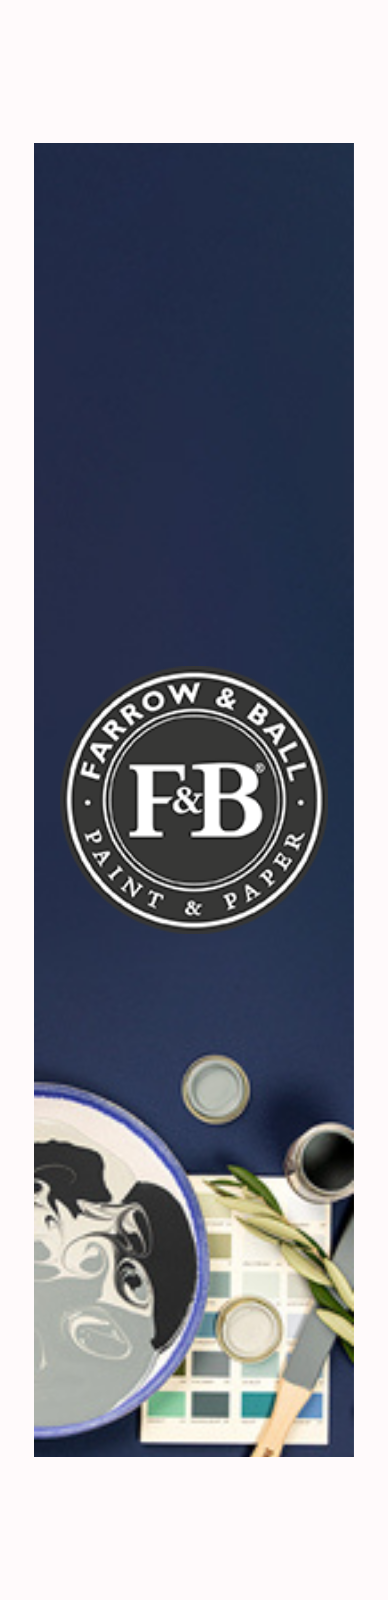 this is a Farrow & Ball banner ad